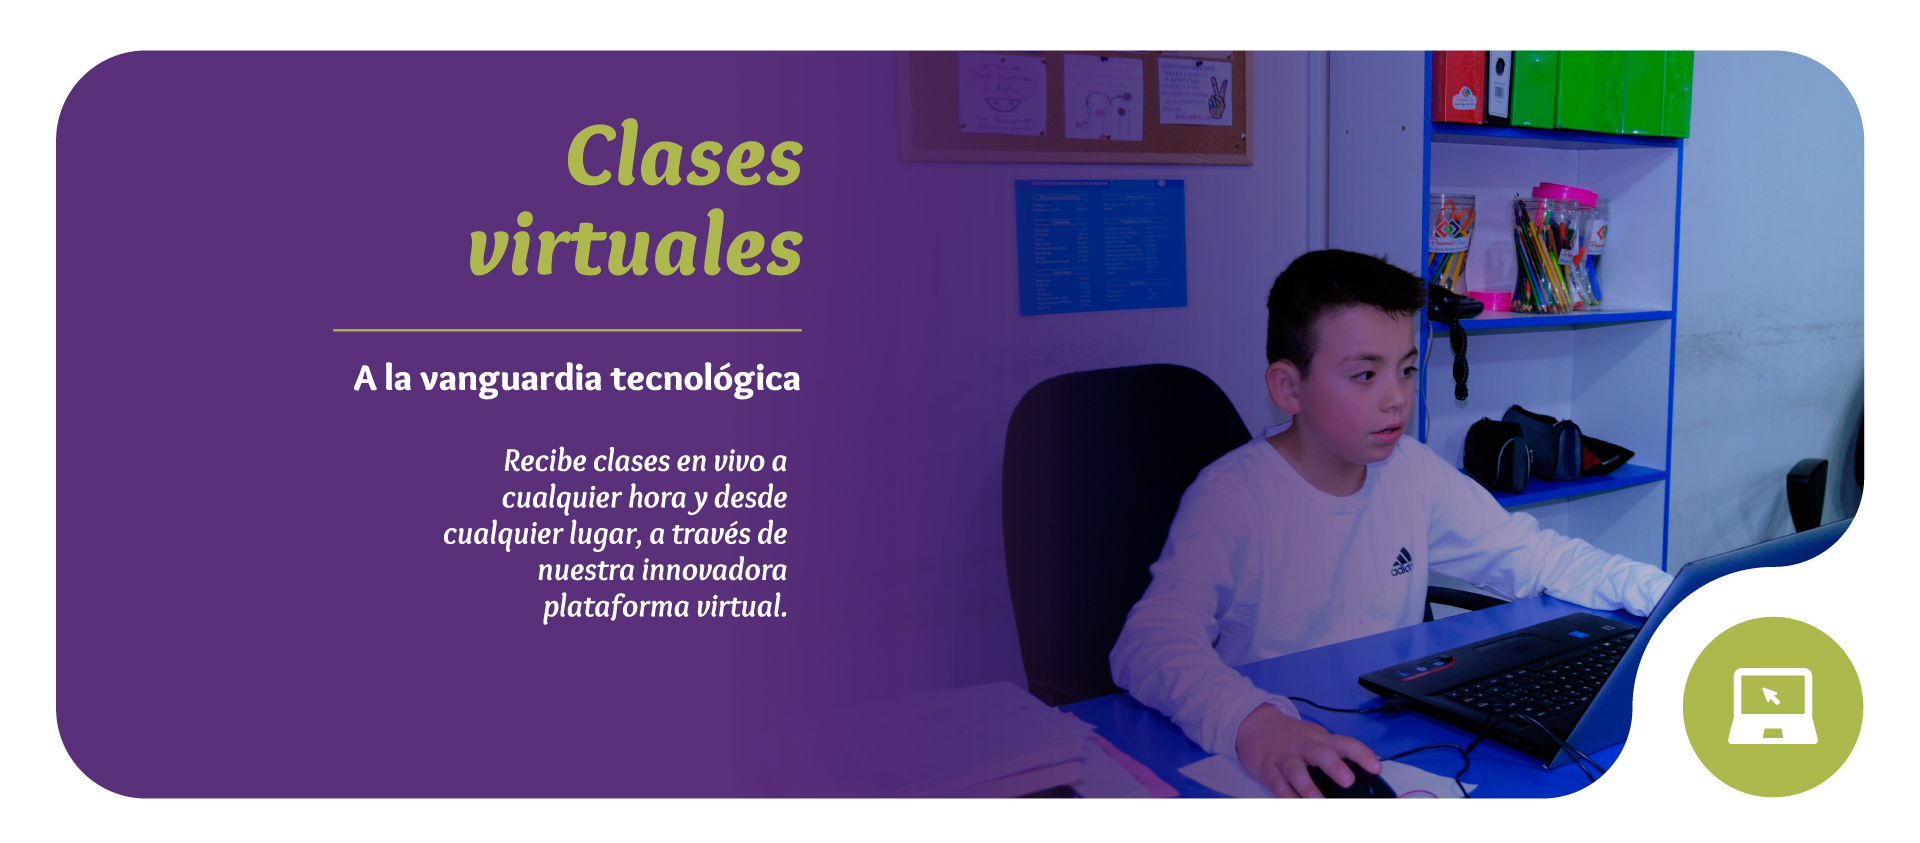 clases-virtuales